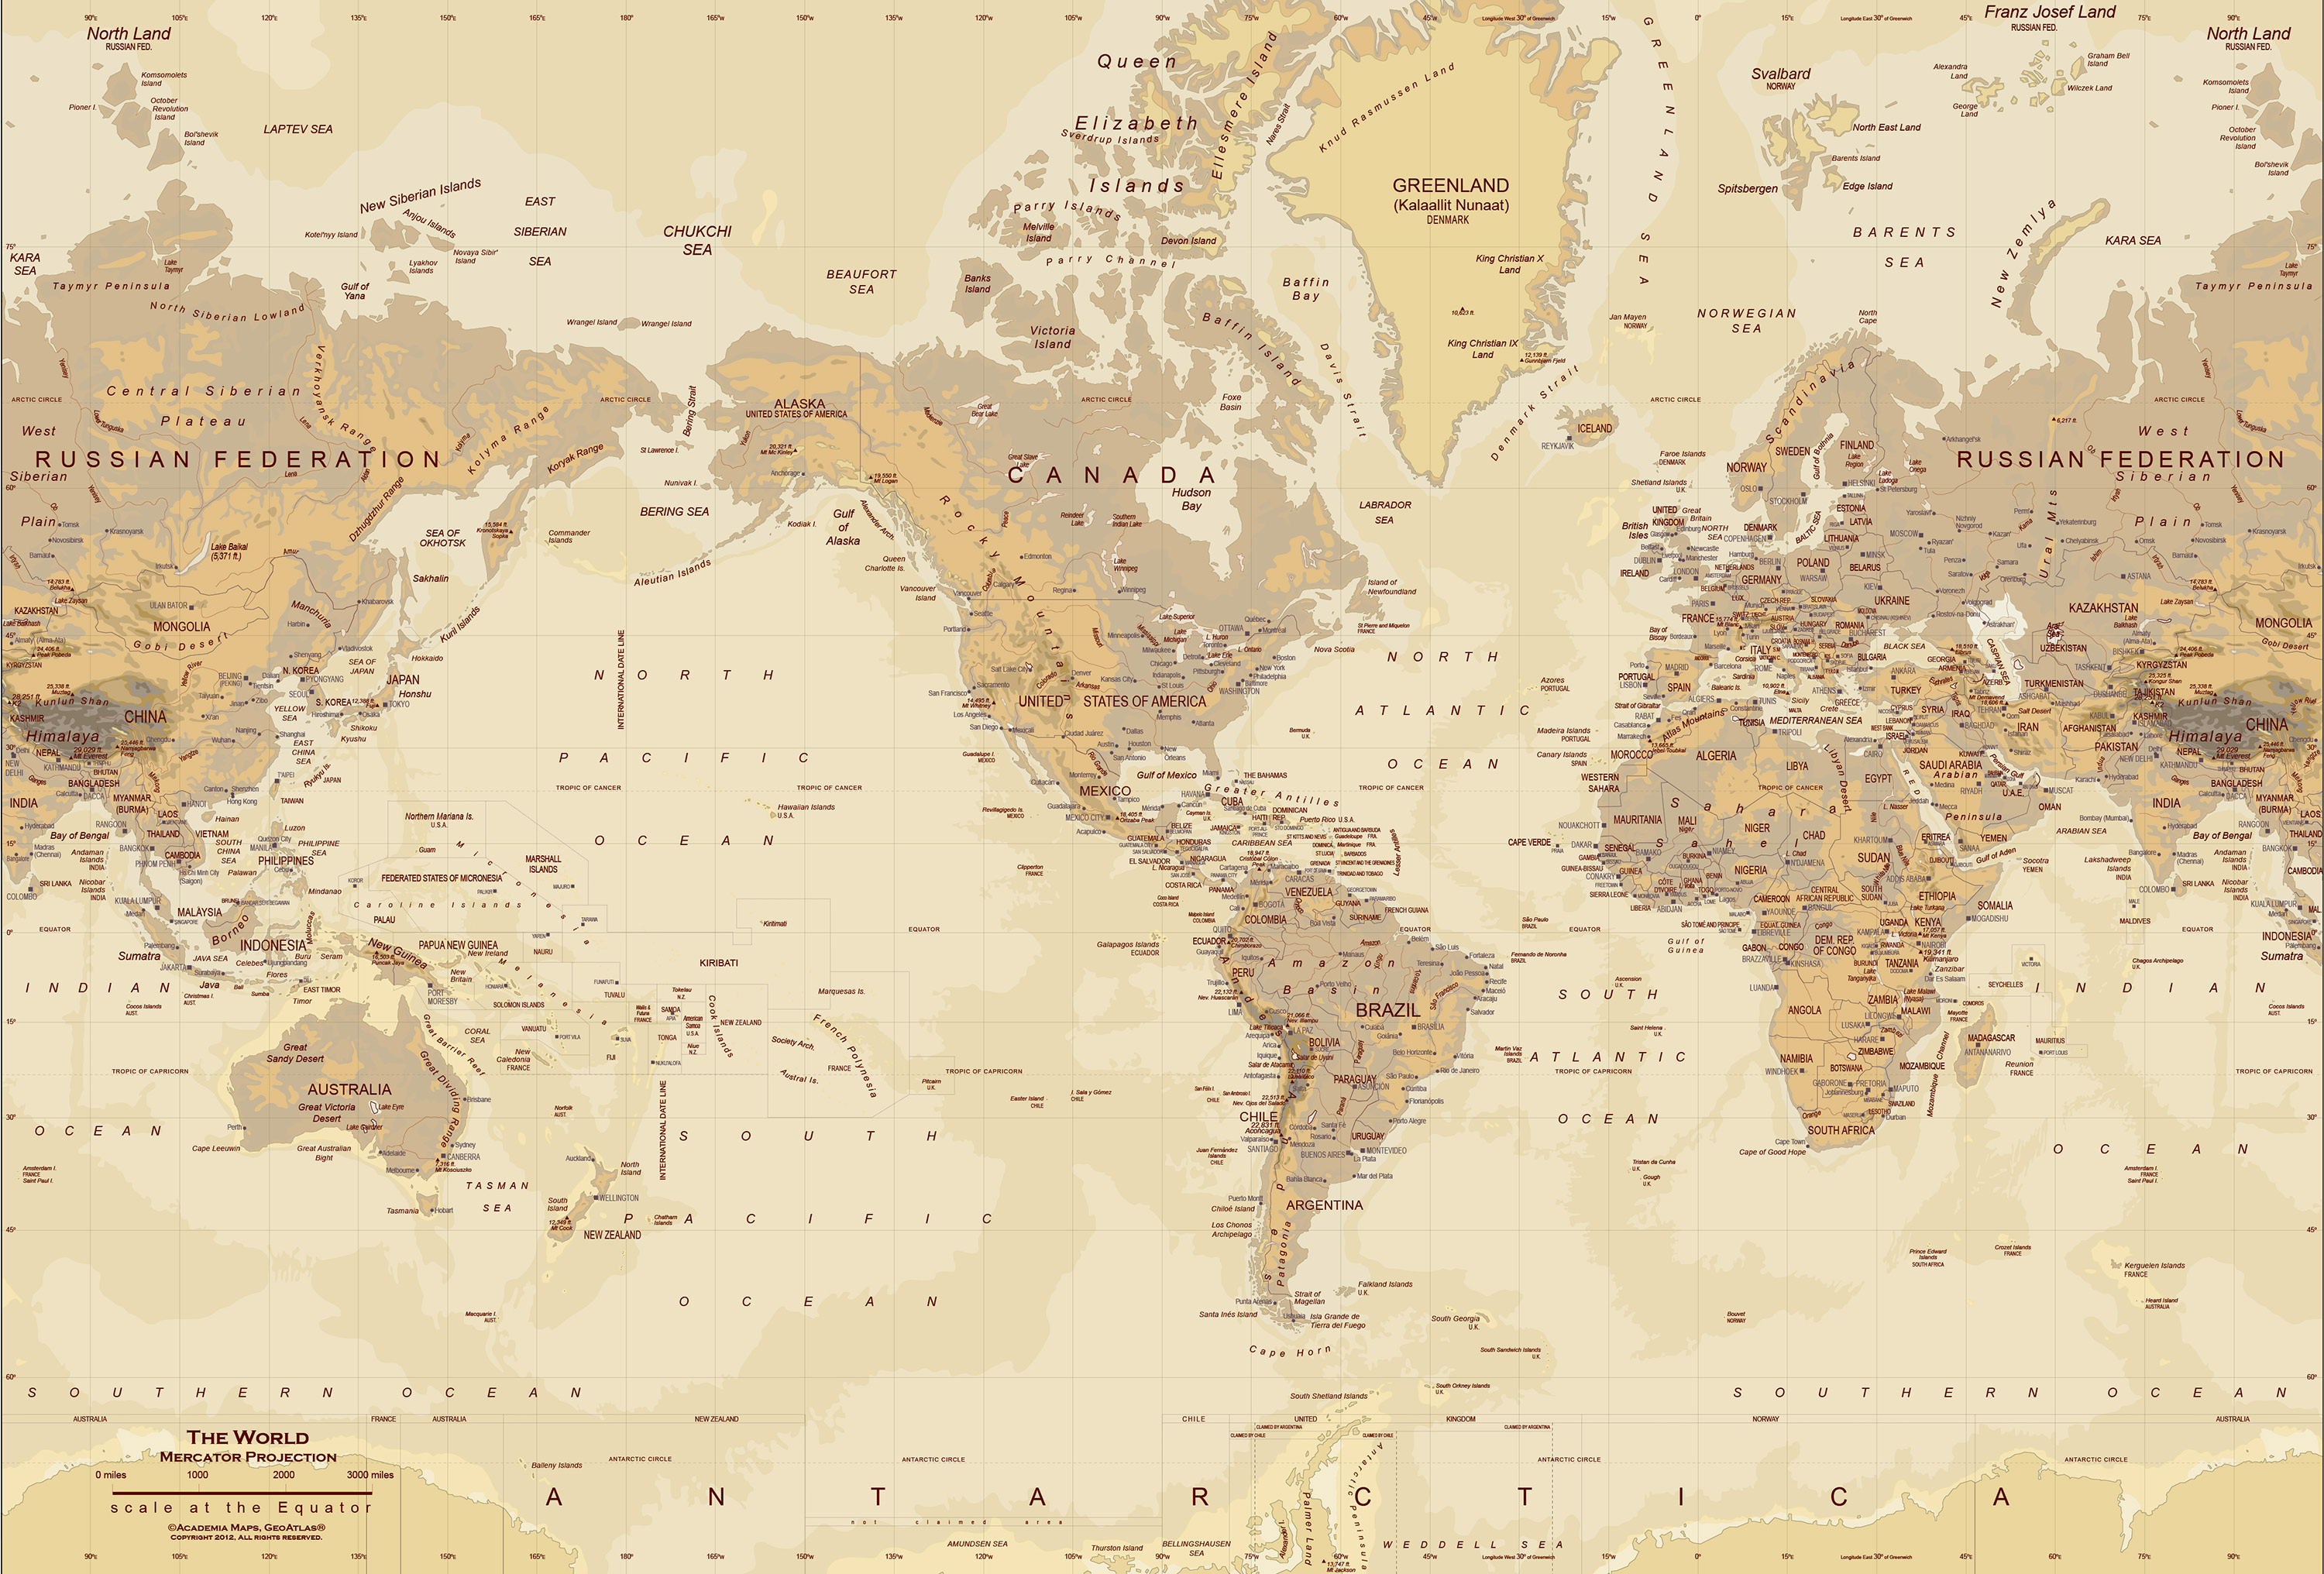 3000x2032px old world map wallpaper border wallpapersafari file name mercator phys tanworld mural lgjpg resolution 3000 x 3000x2032 gumiabroncs Gallery